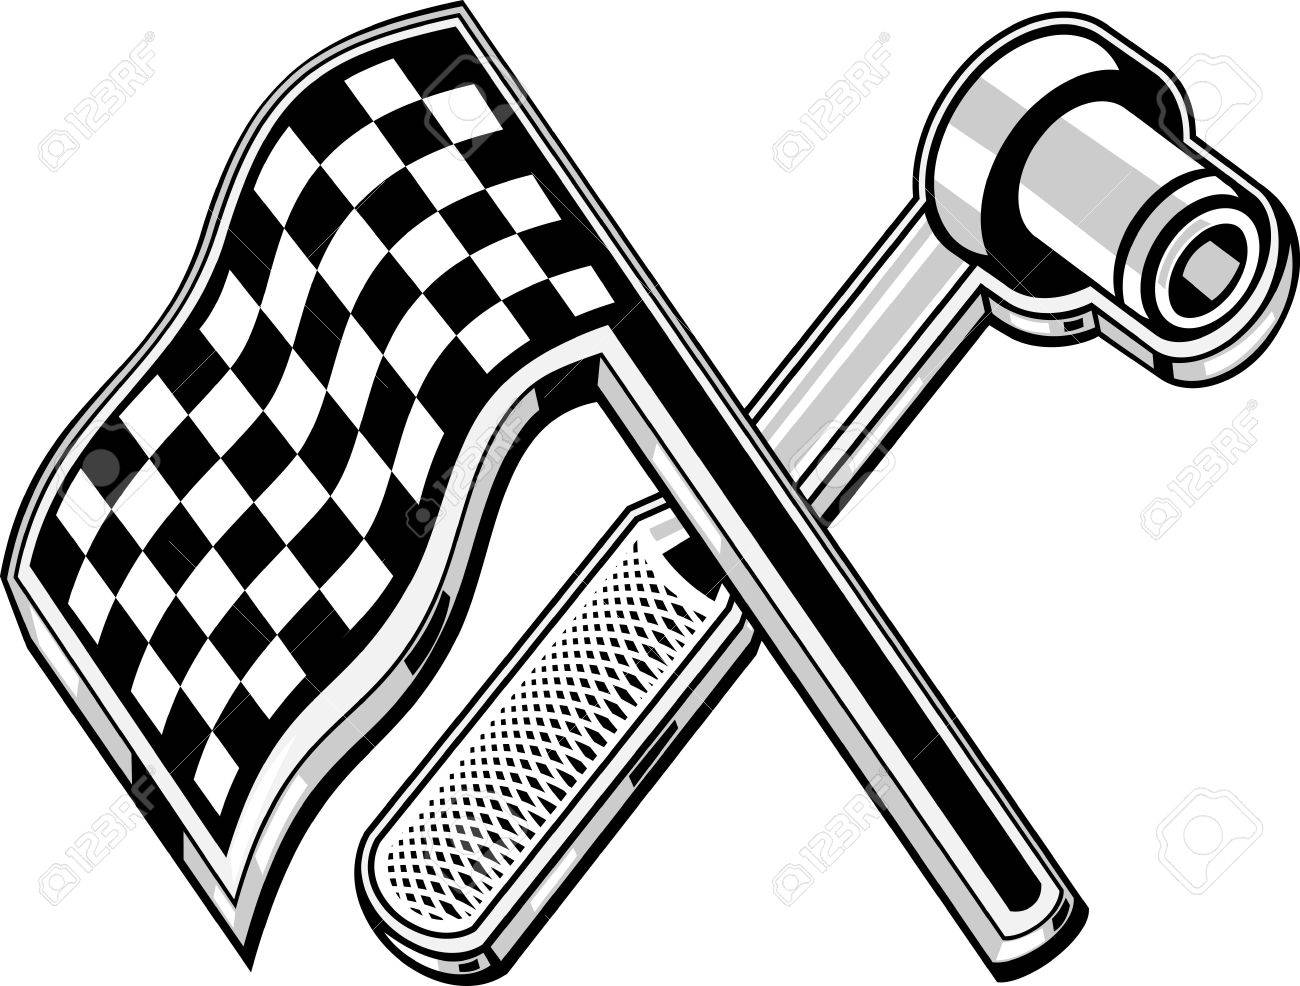 1300x986 Illustration Of A Checkered Flag With Socket Wrench Crossed Stock